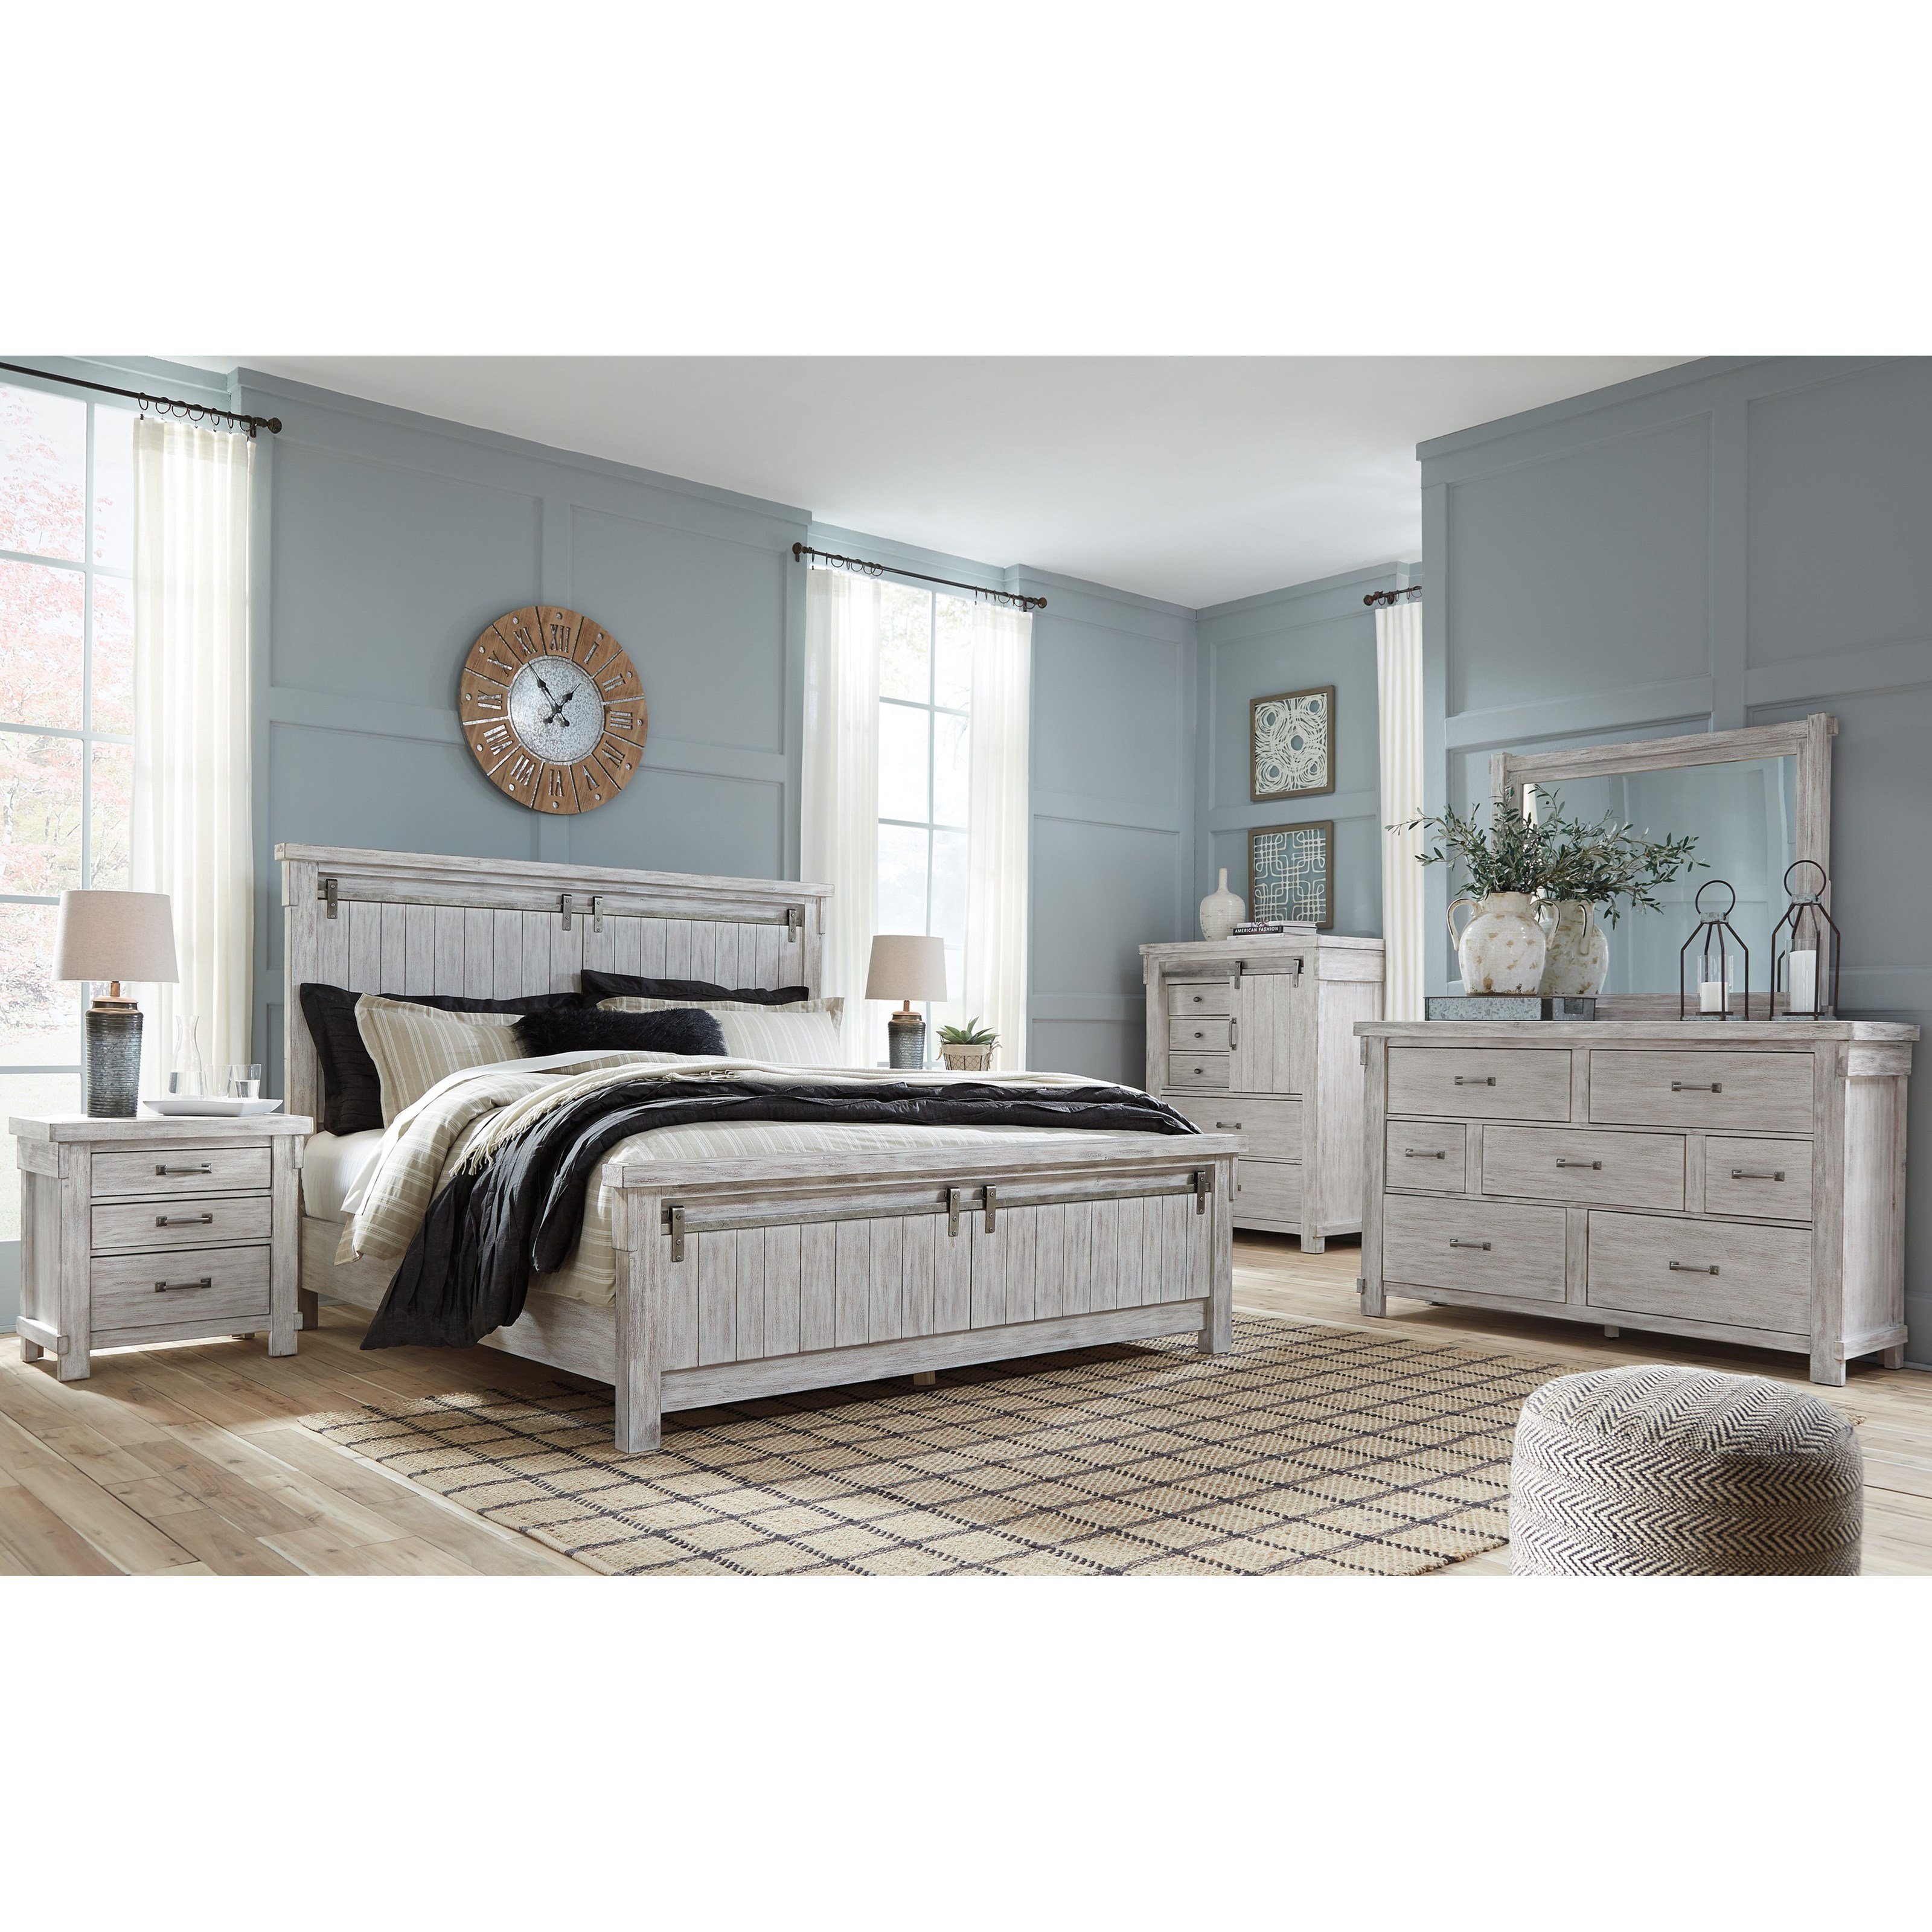 Brashland King Bedroom Group by Signature Design by Ashley at Sparks HomeStore